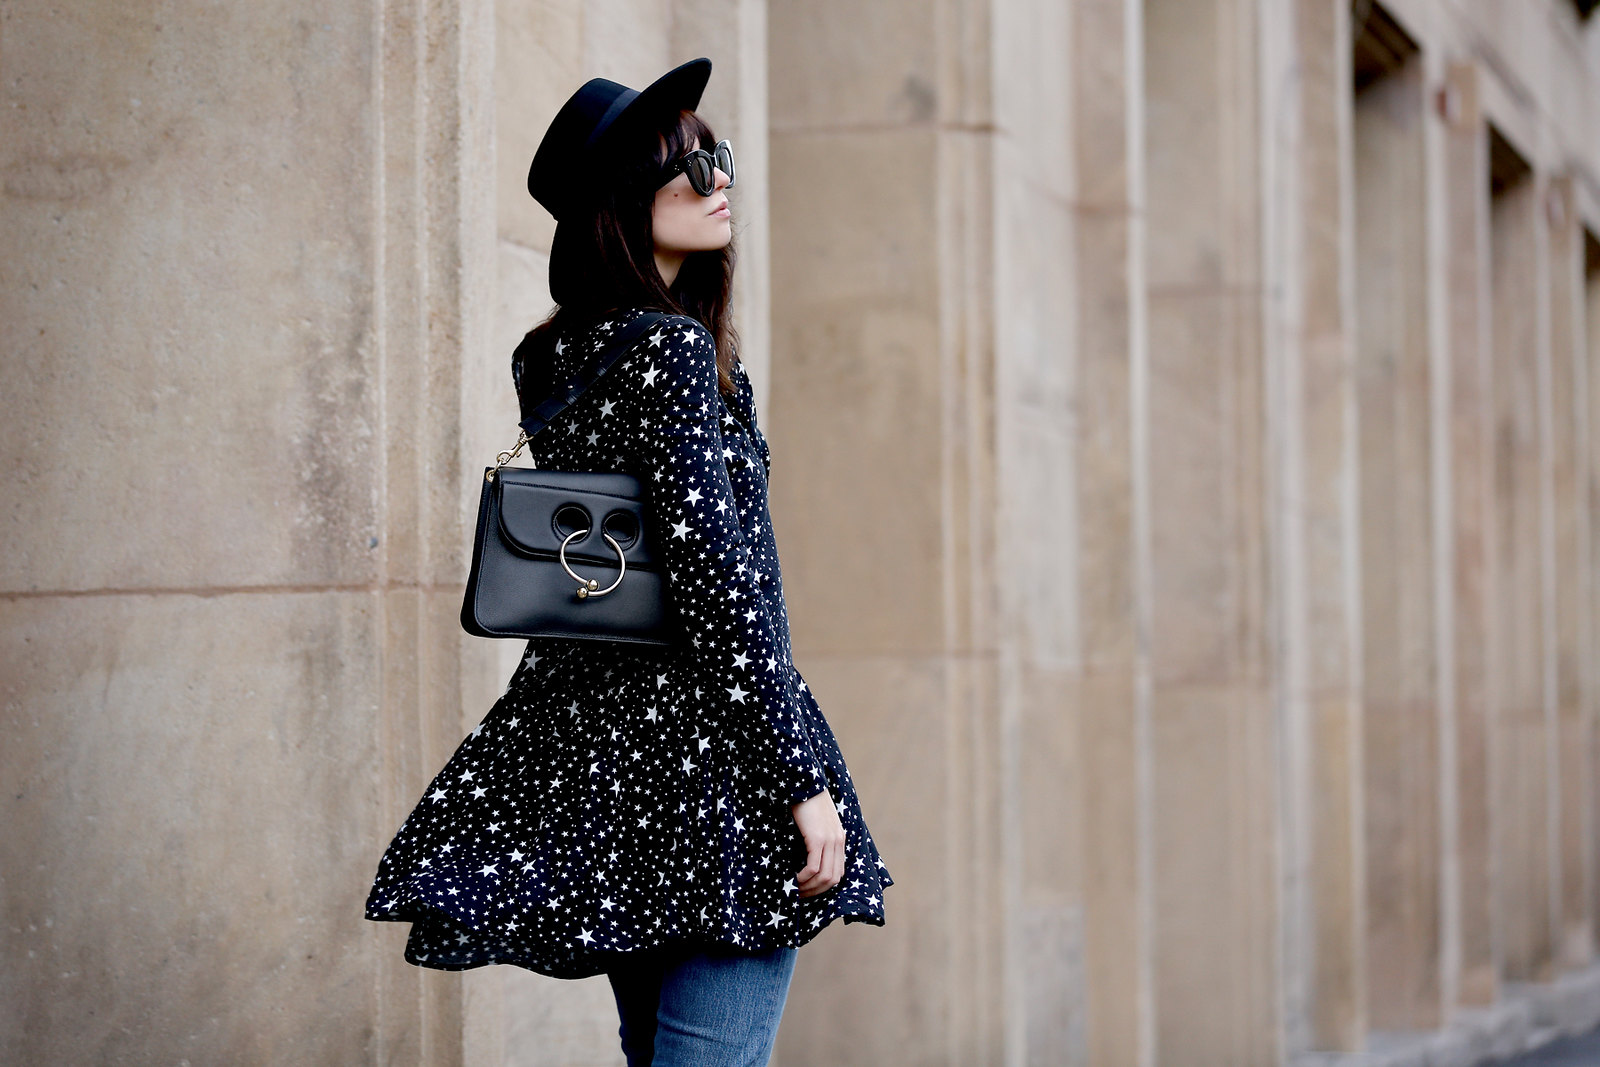 pimkie star dress zorro spanish hat hut kleidchen black allblack piercebag j.w.anderson mytheresa luxury shopping luxe céline audrey sunglasses blogger style fashionblogger germany berlin bloggers cats & dogs düsseldorf modeblog ricarda schernus fashion 3